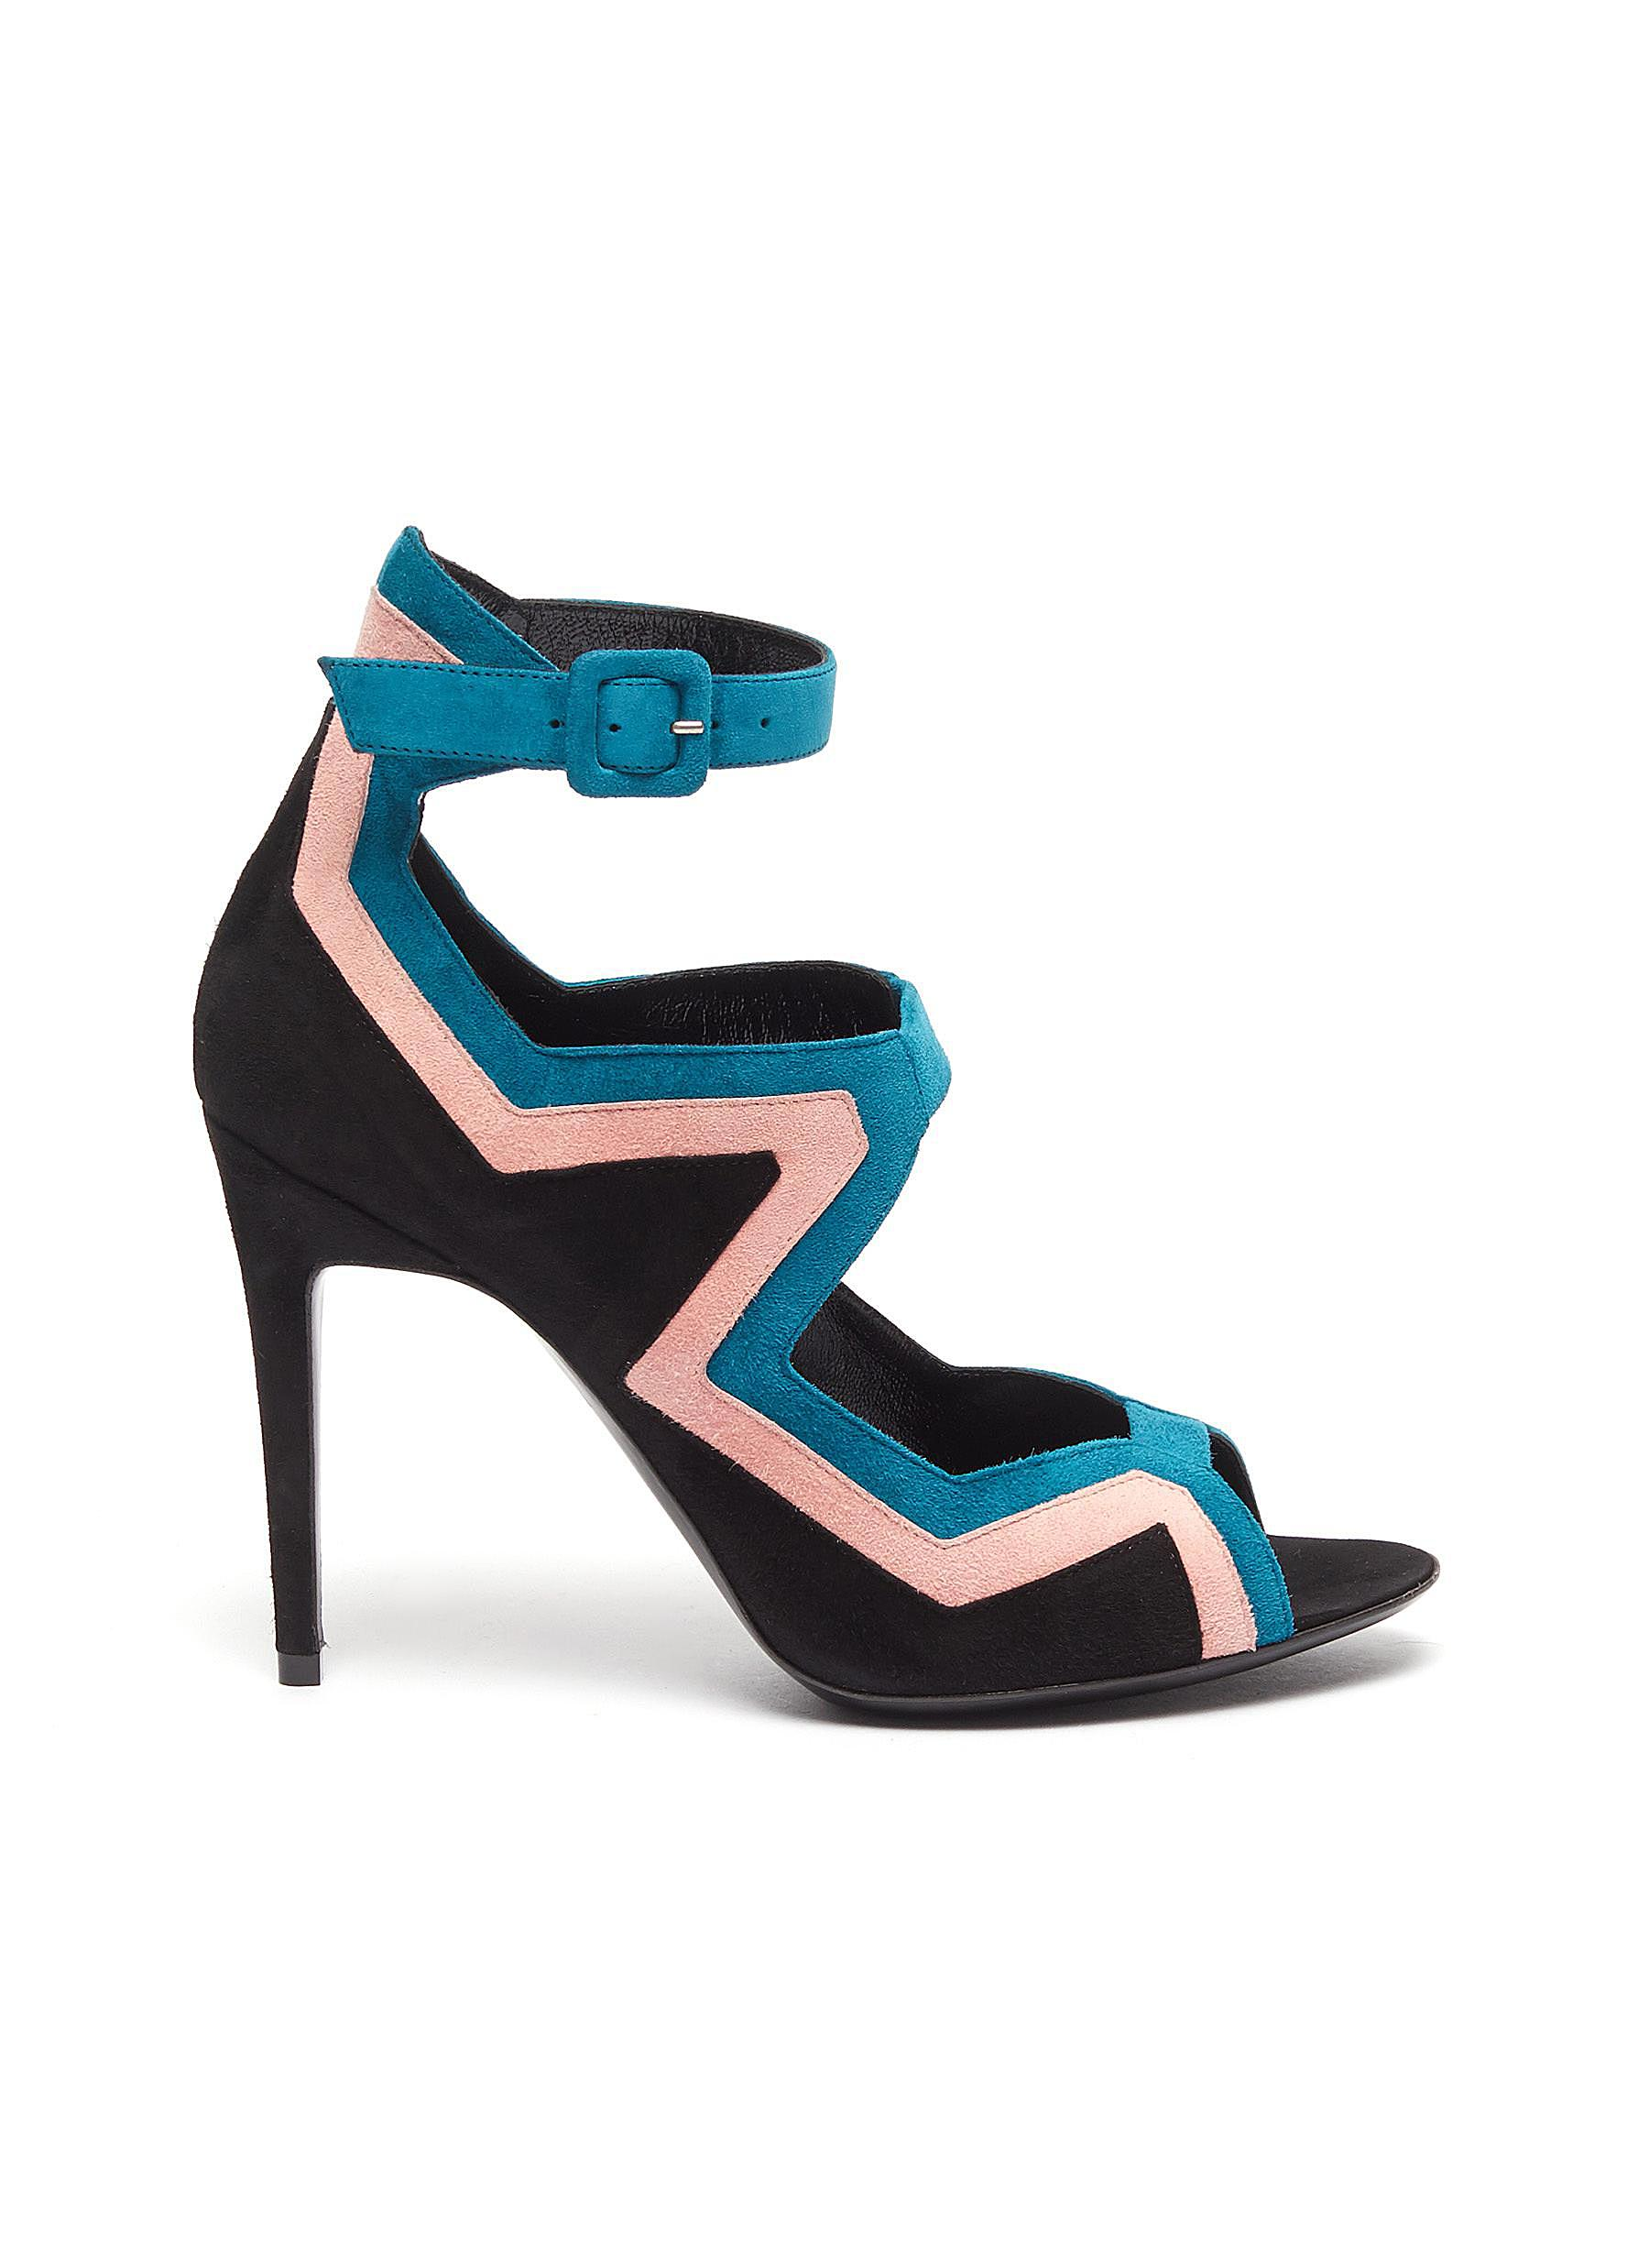 Vibe ankle strap colourblock geometric cutout suede sandals by Pierre Hardy